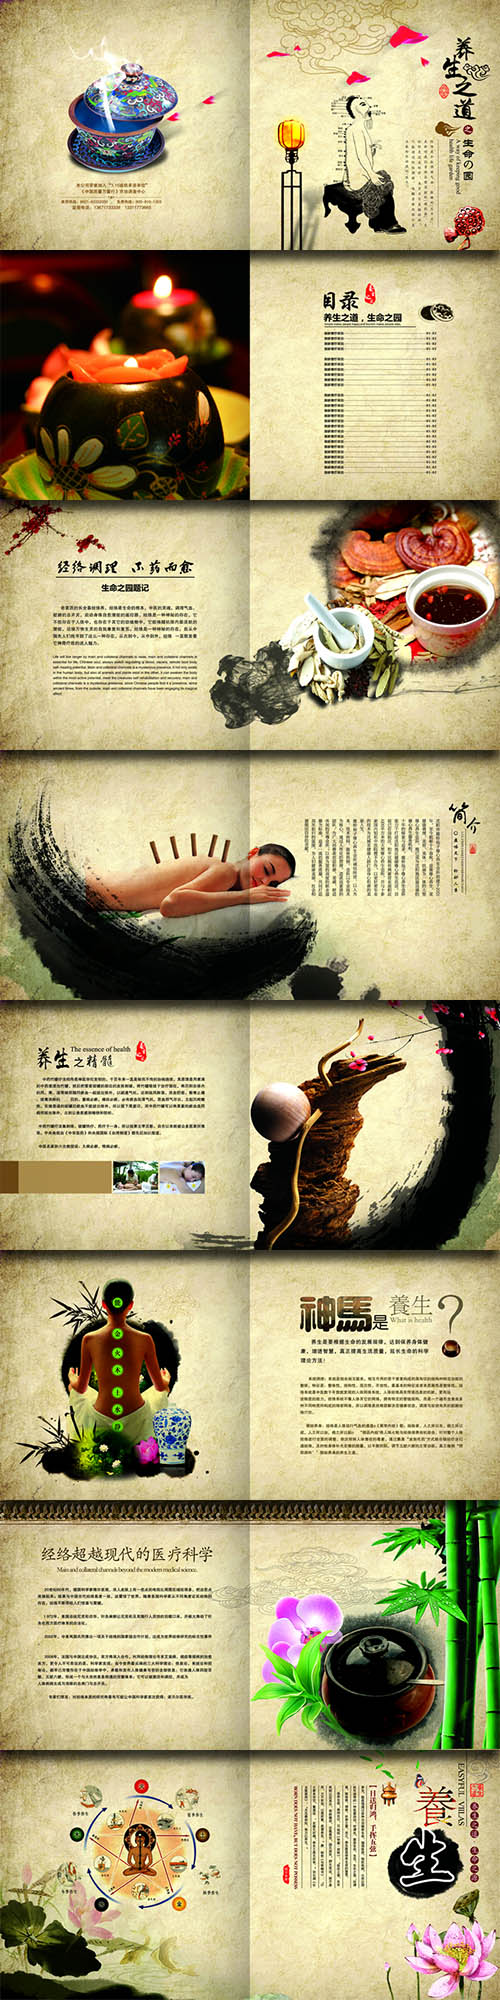 PSD Sources - Chinese Traditional Medicine #2